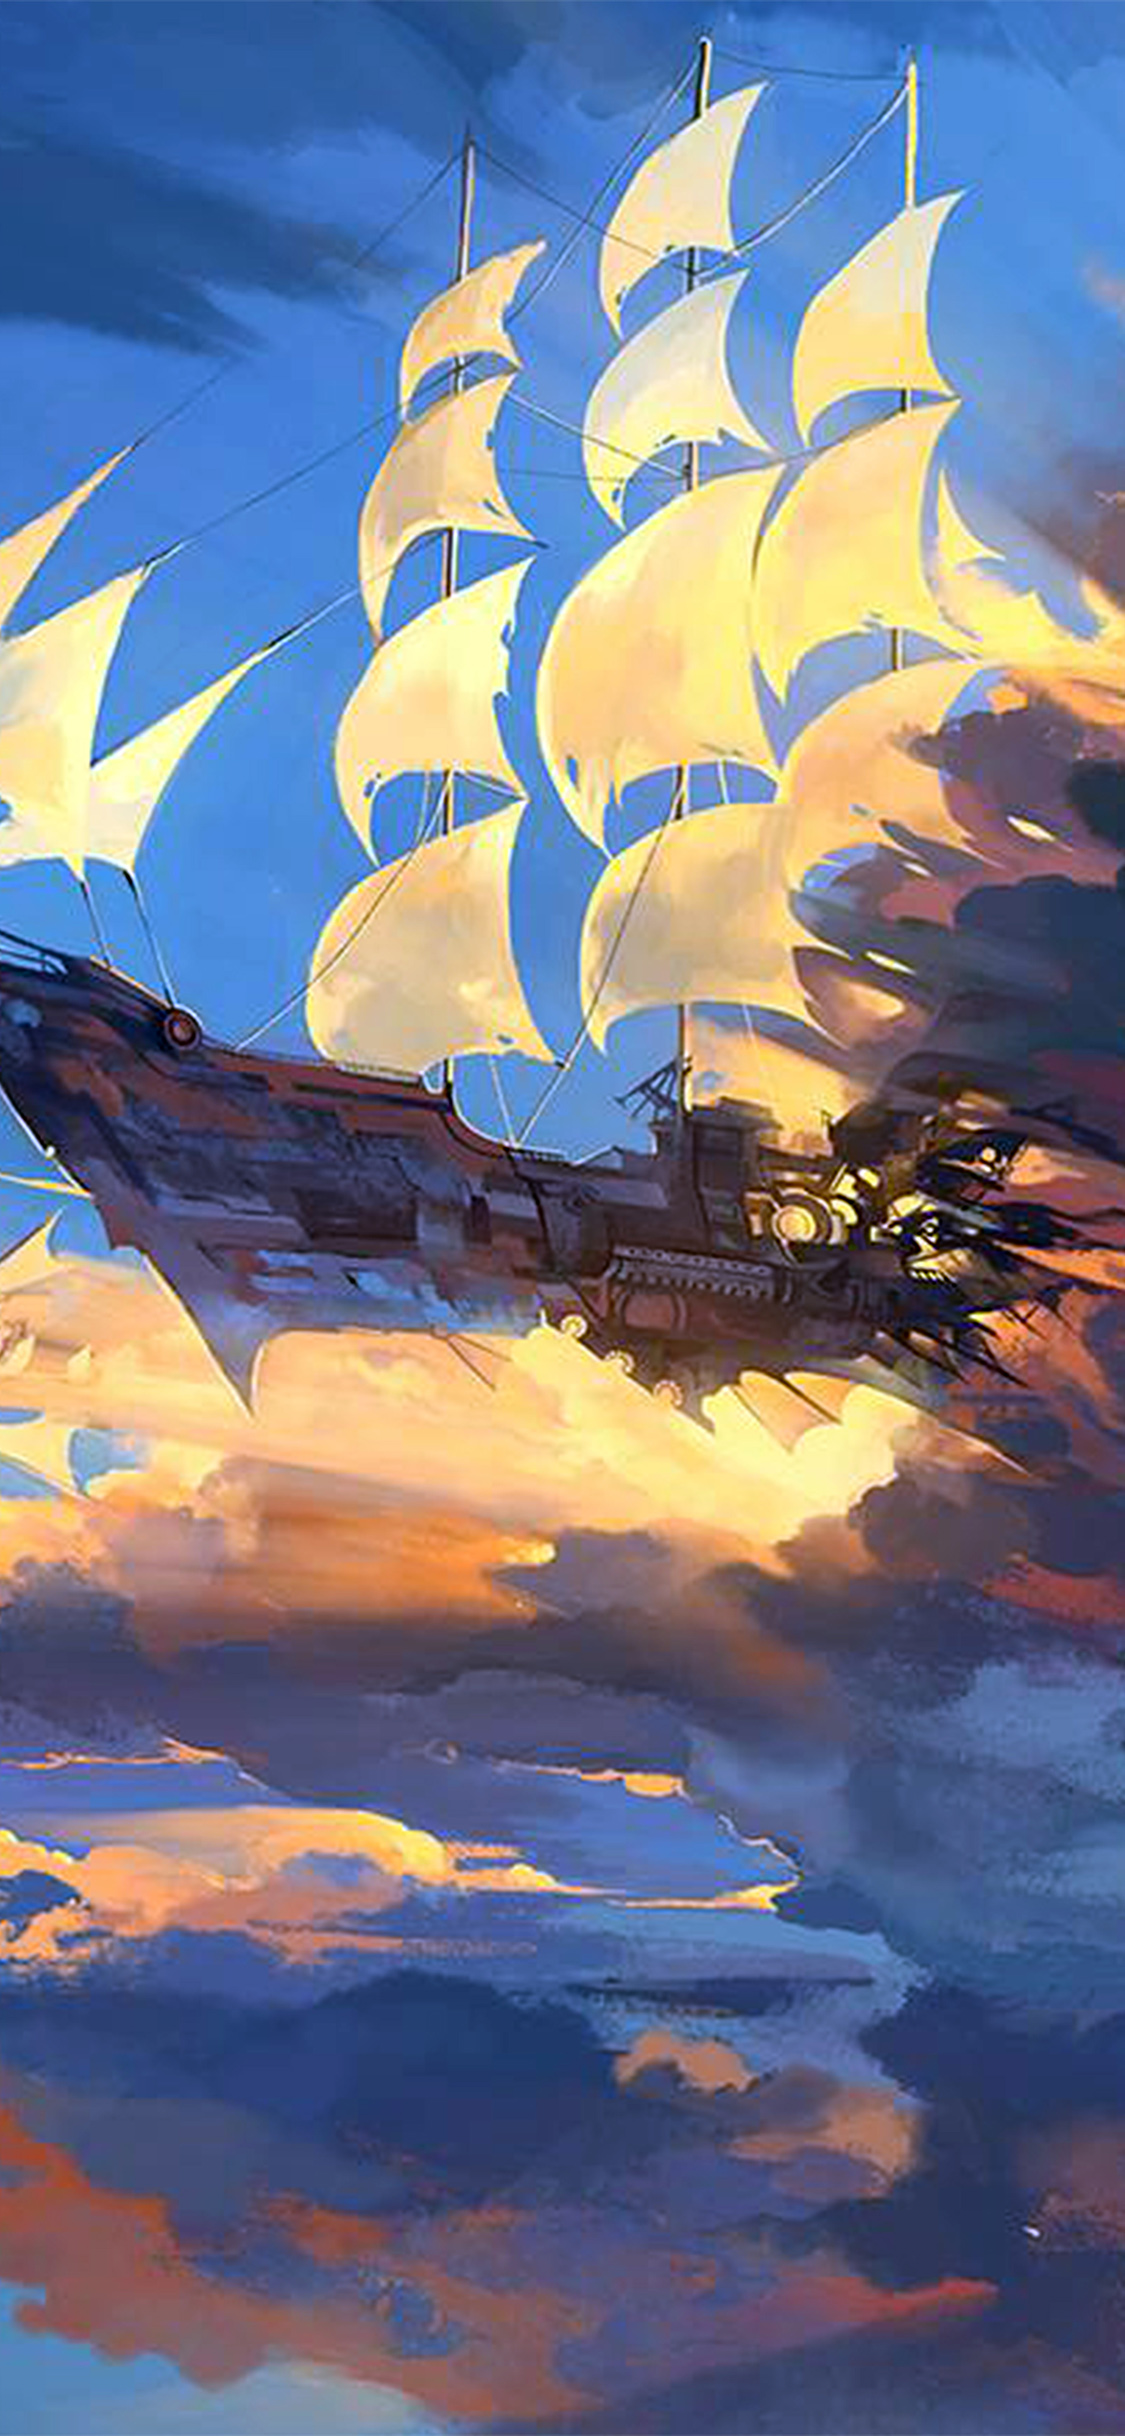 iPhoneXpapers.com-Apple-iPhone-wallpaper-az67-fly-ship-anime-illustration-art